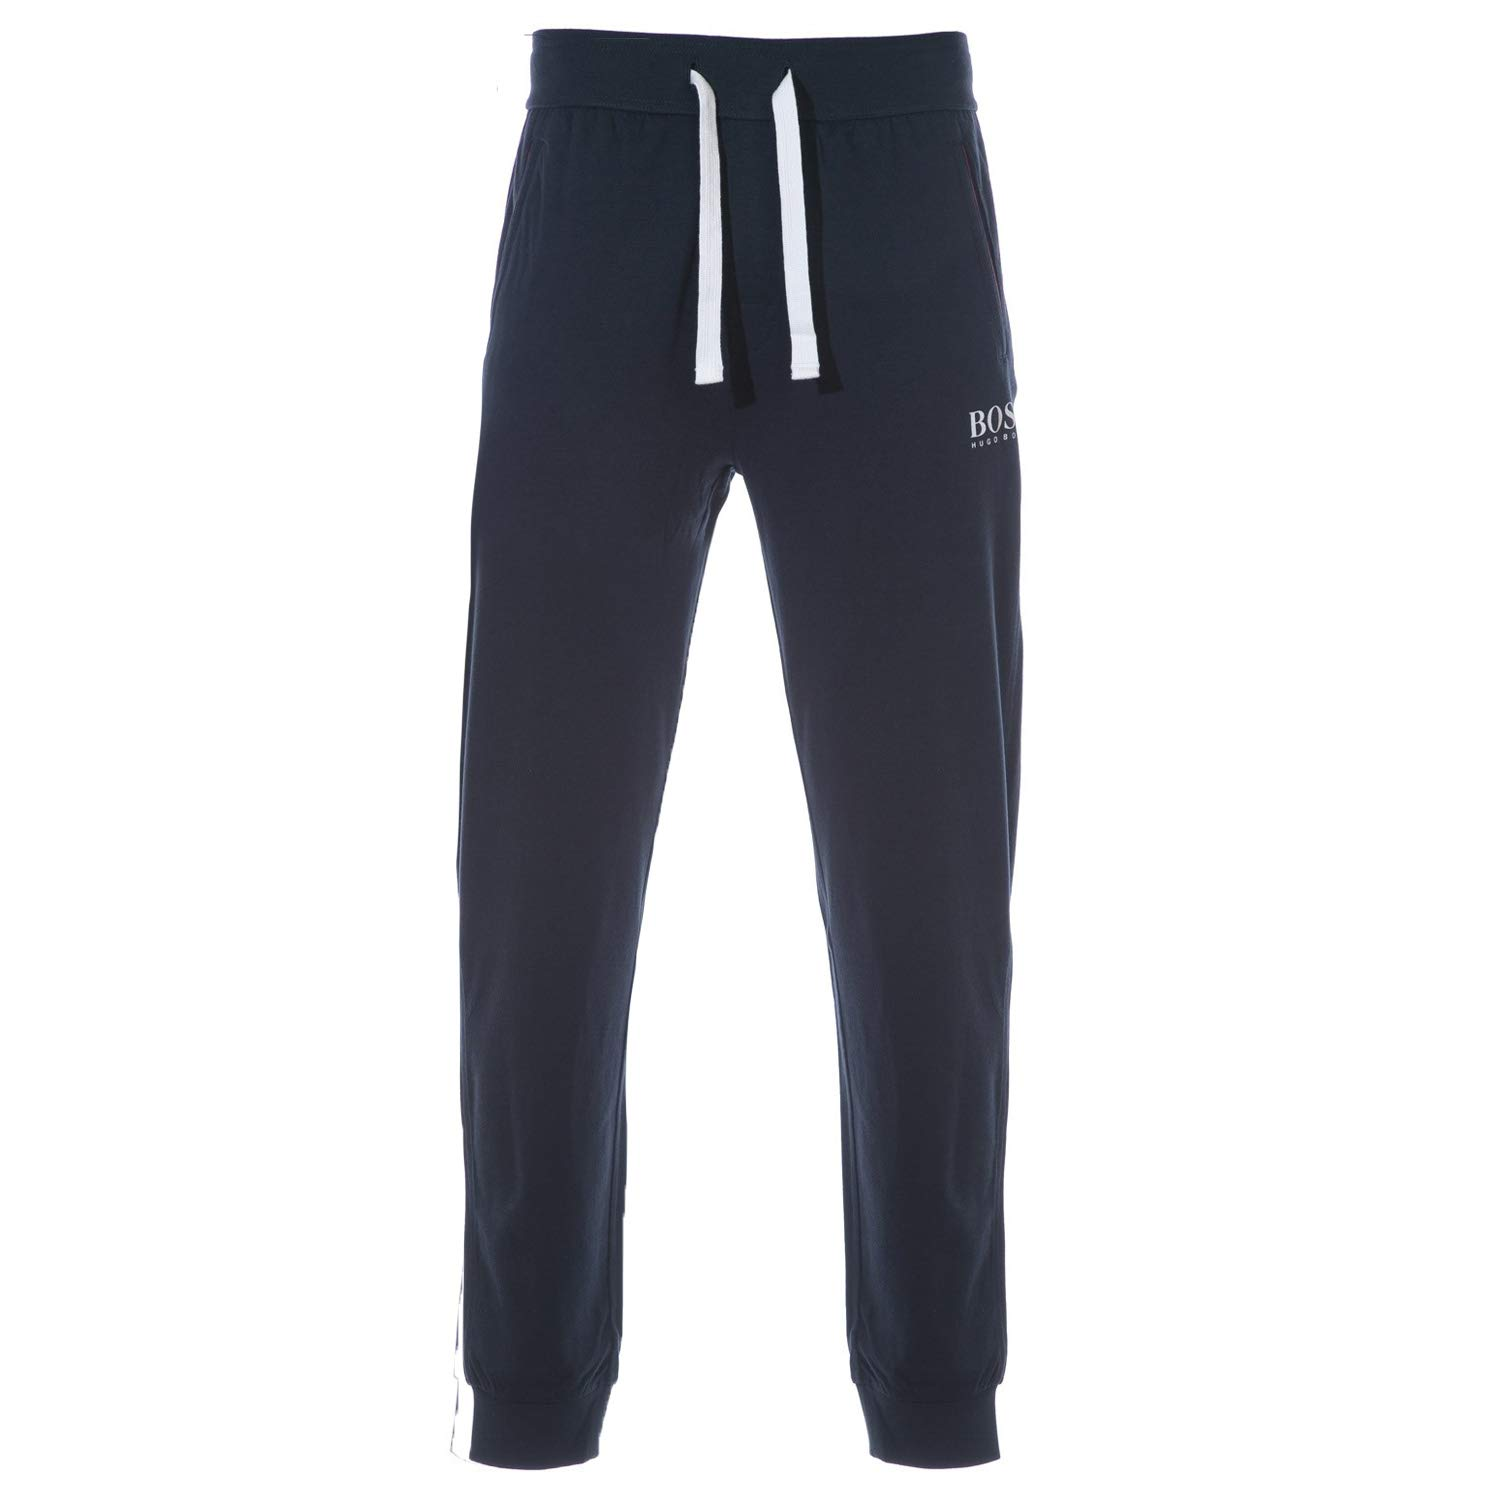 BOSS Authentic Pant Sweatpant in Navy